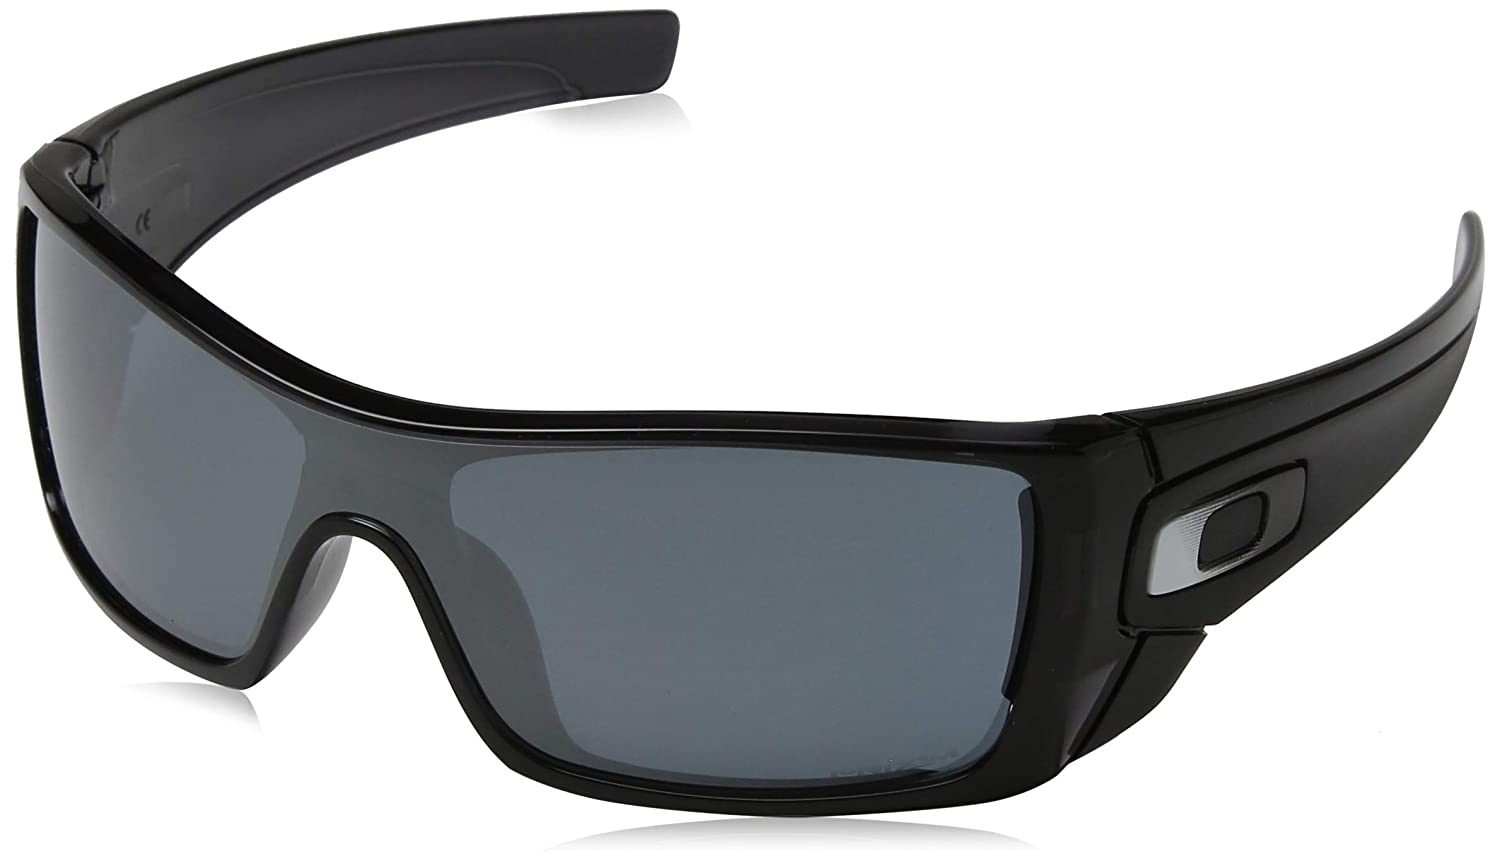 Amazon.com  Oakley Men s Batwolf Non-Polarized Iridium Rectangular  Sunglasses, Black Ink, 0 mm  Clothing a481ae10cf